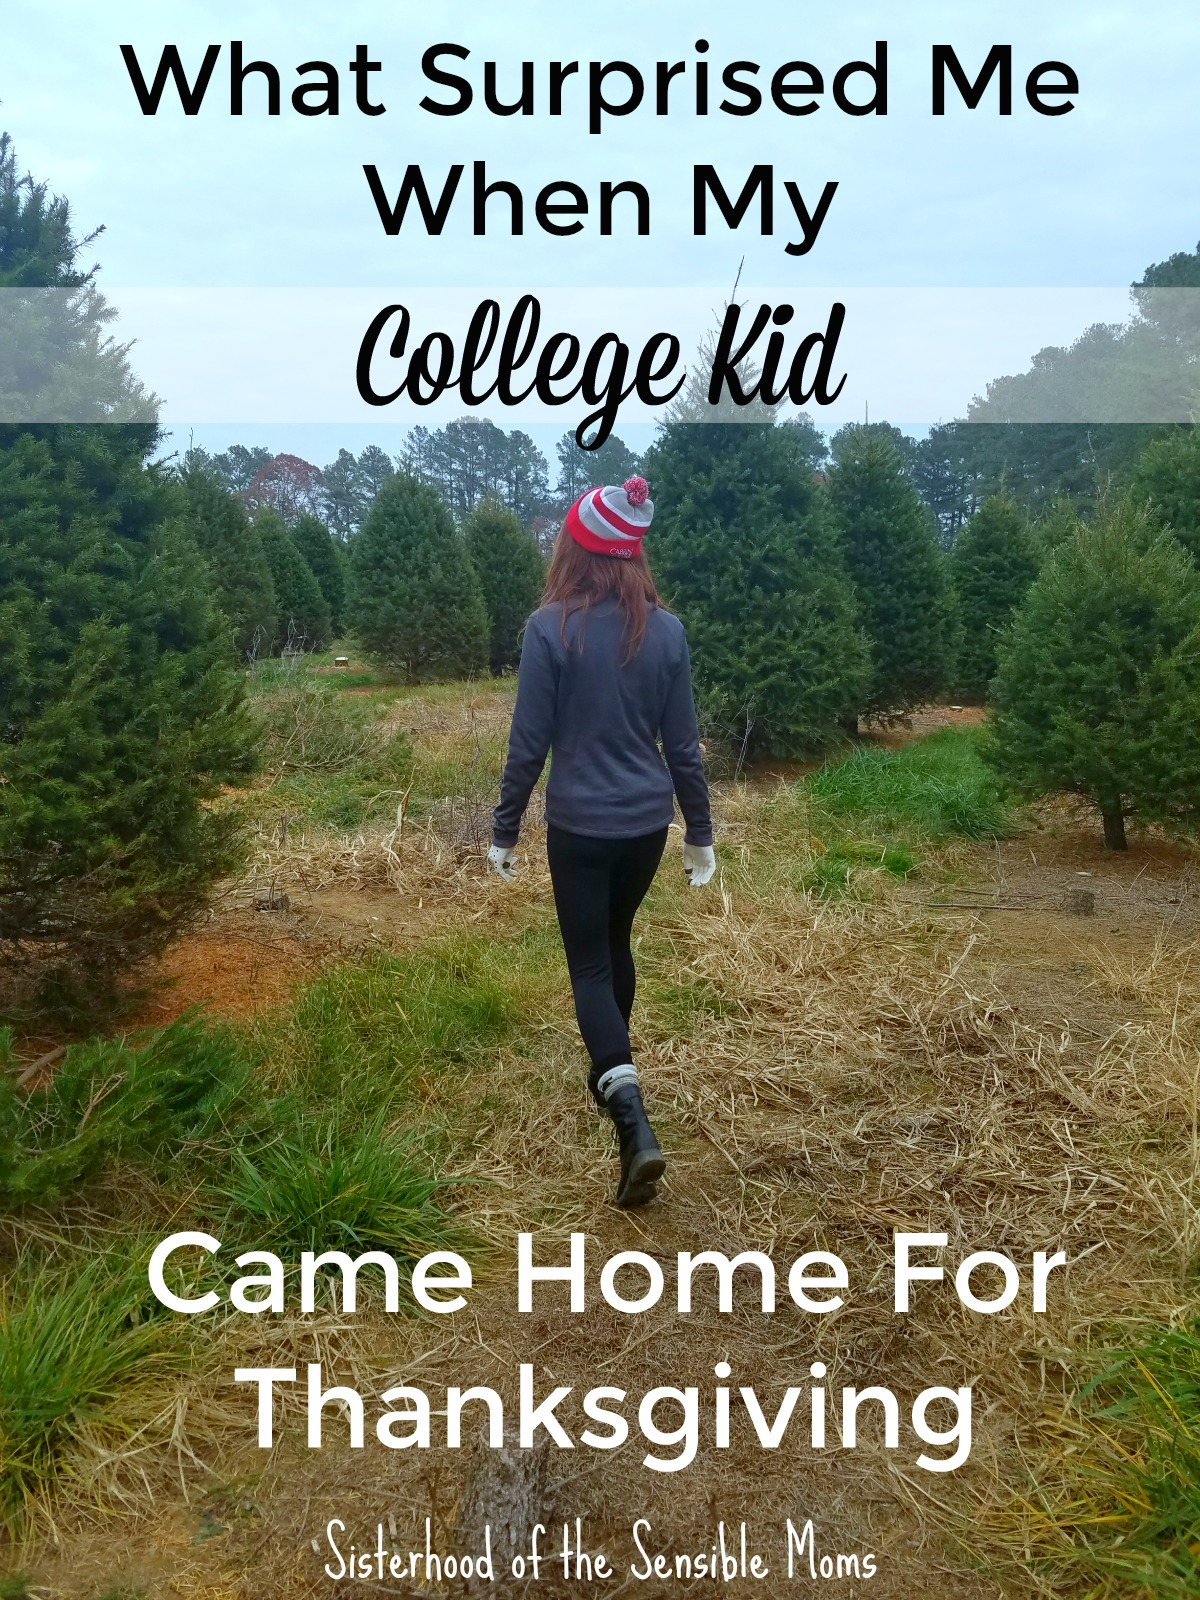 What Surprised Me When My College Kid Came Home for Thanksgiving | I was not prepared for how I felt when my college kid came home for Thanksgiving. Her visit illuminated with LED intensity all that had been missing. | Parenting | Sisterhood of the Sensible Moms